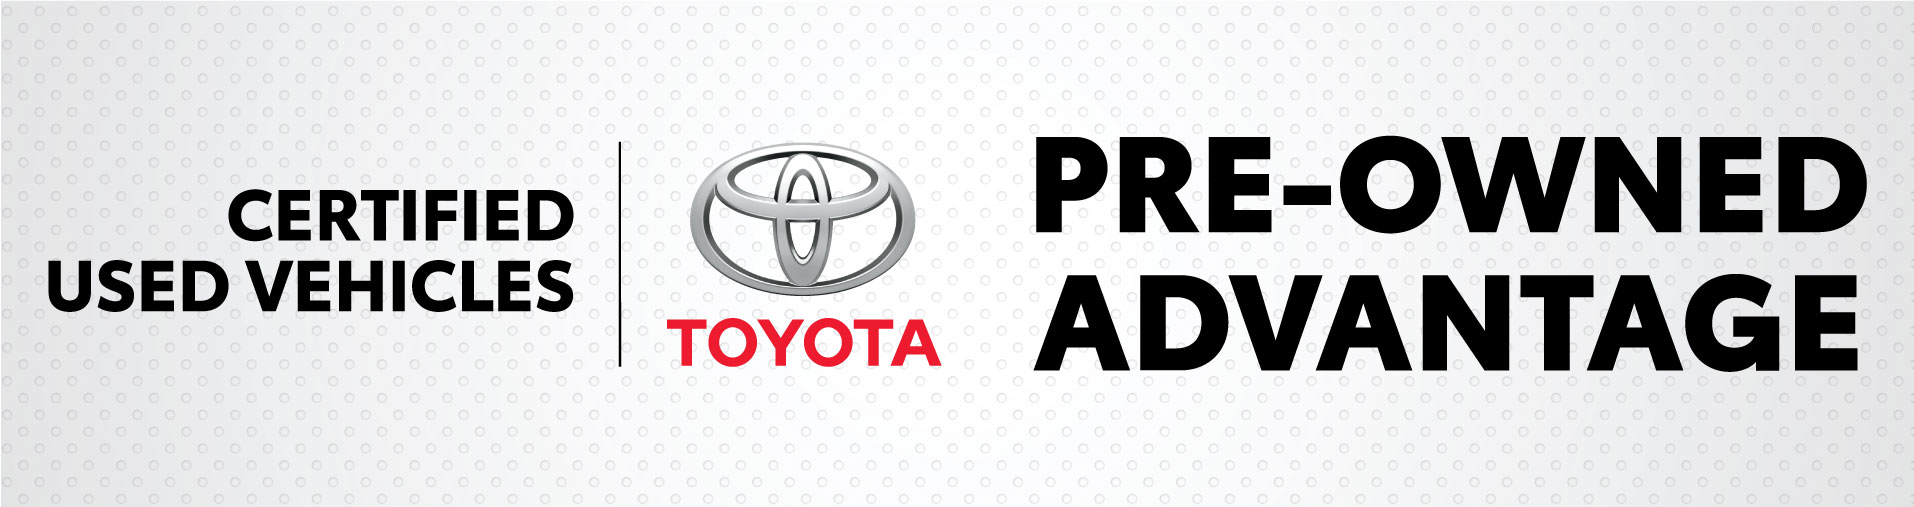 Toyota Certified Used Vehicles Banner